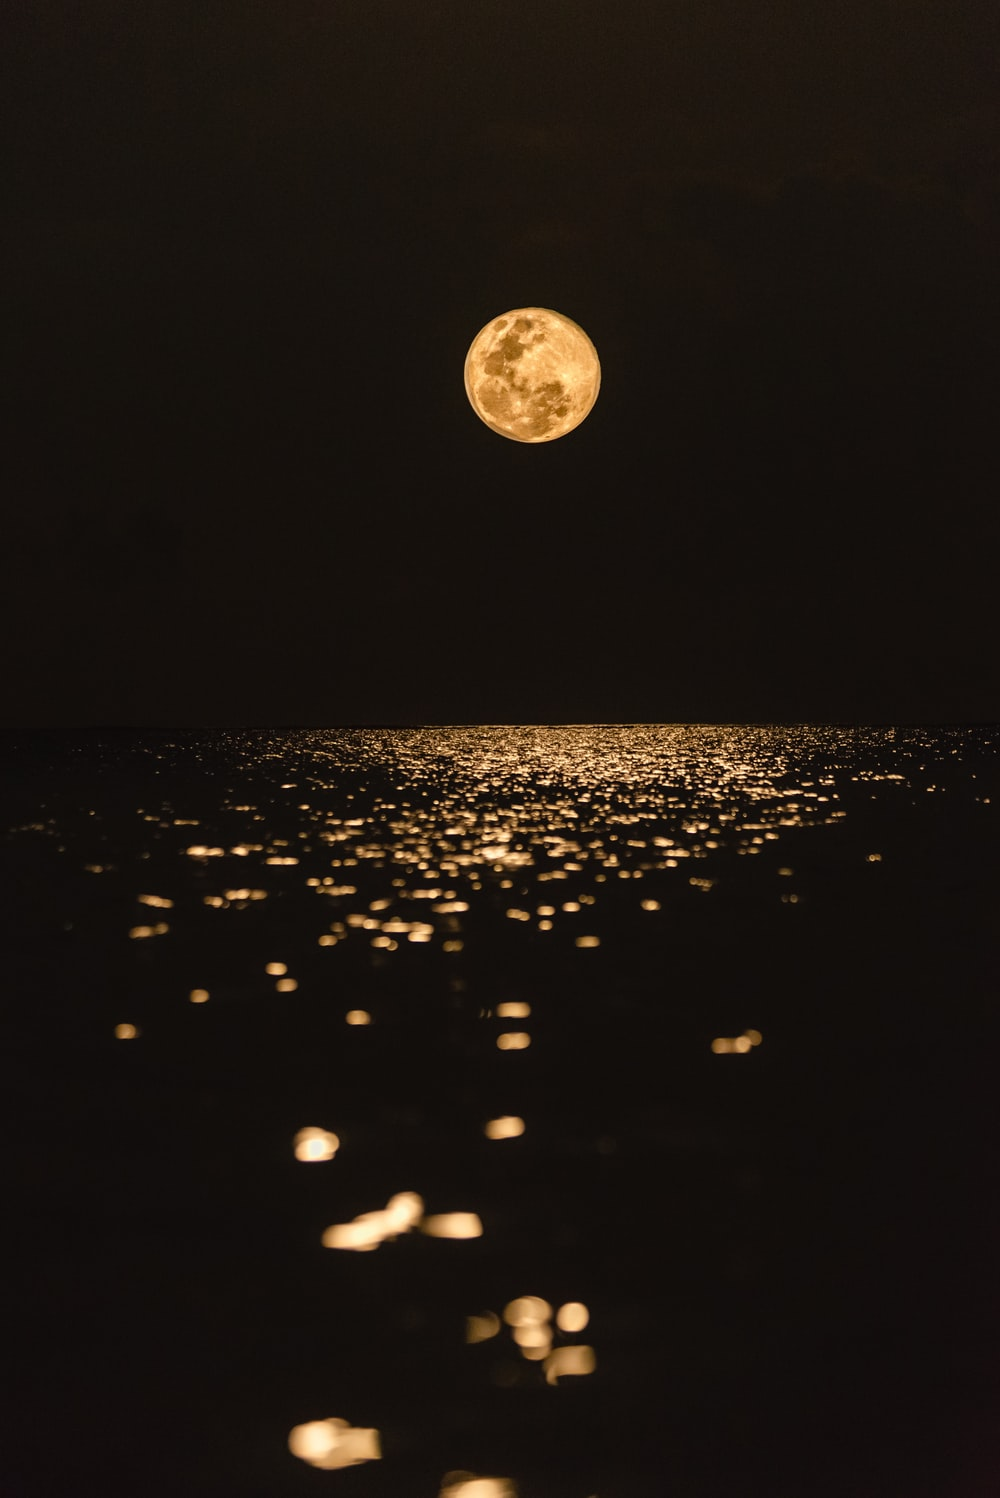 full moon over the body of water